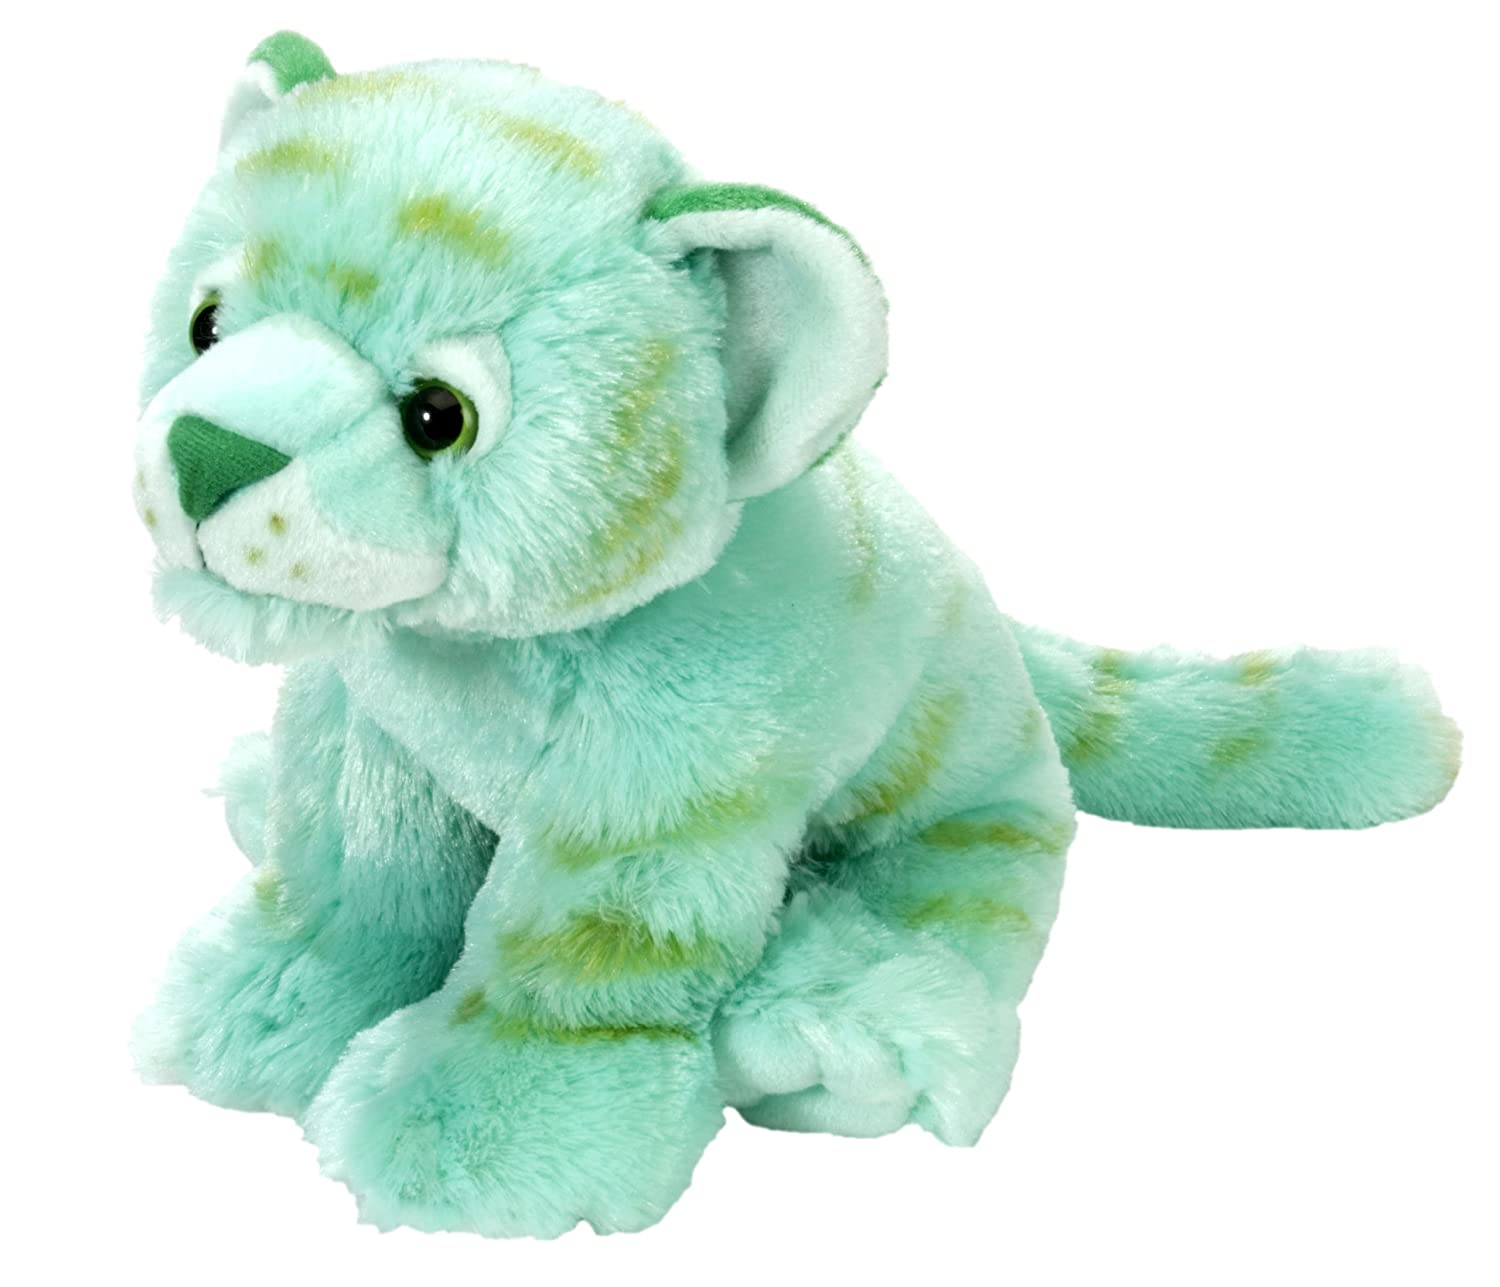 Wild Republic Tiger Plush, Stuffed Animal, Plush Toy, Gifts For Kids, Mint Green, Cuddlekins 12 Inches